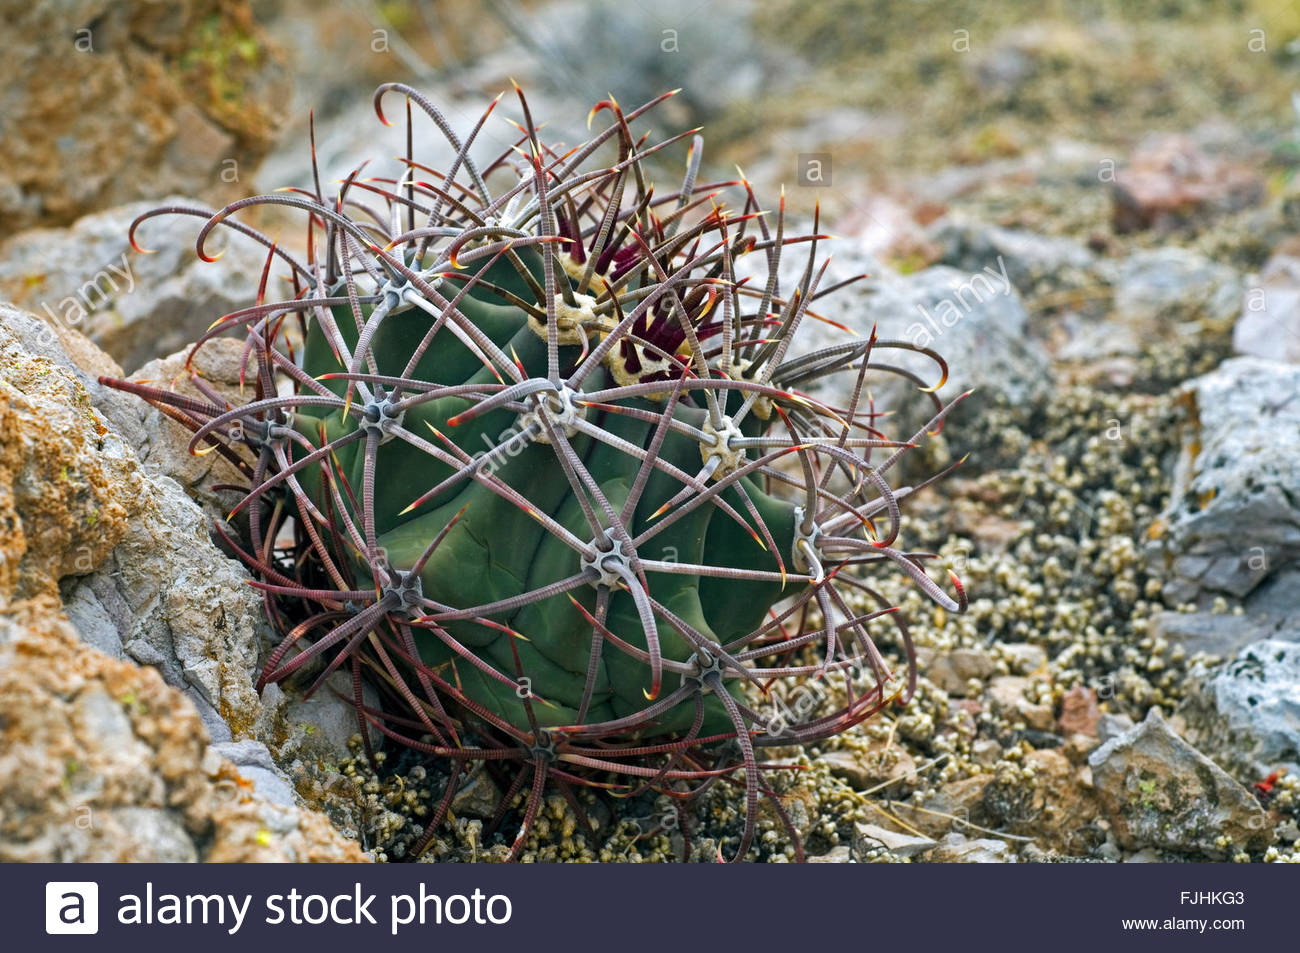 Coryphantha Stock Photos & Coryphantha Stock Images.